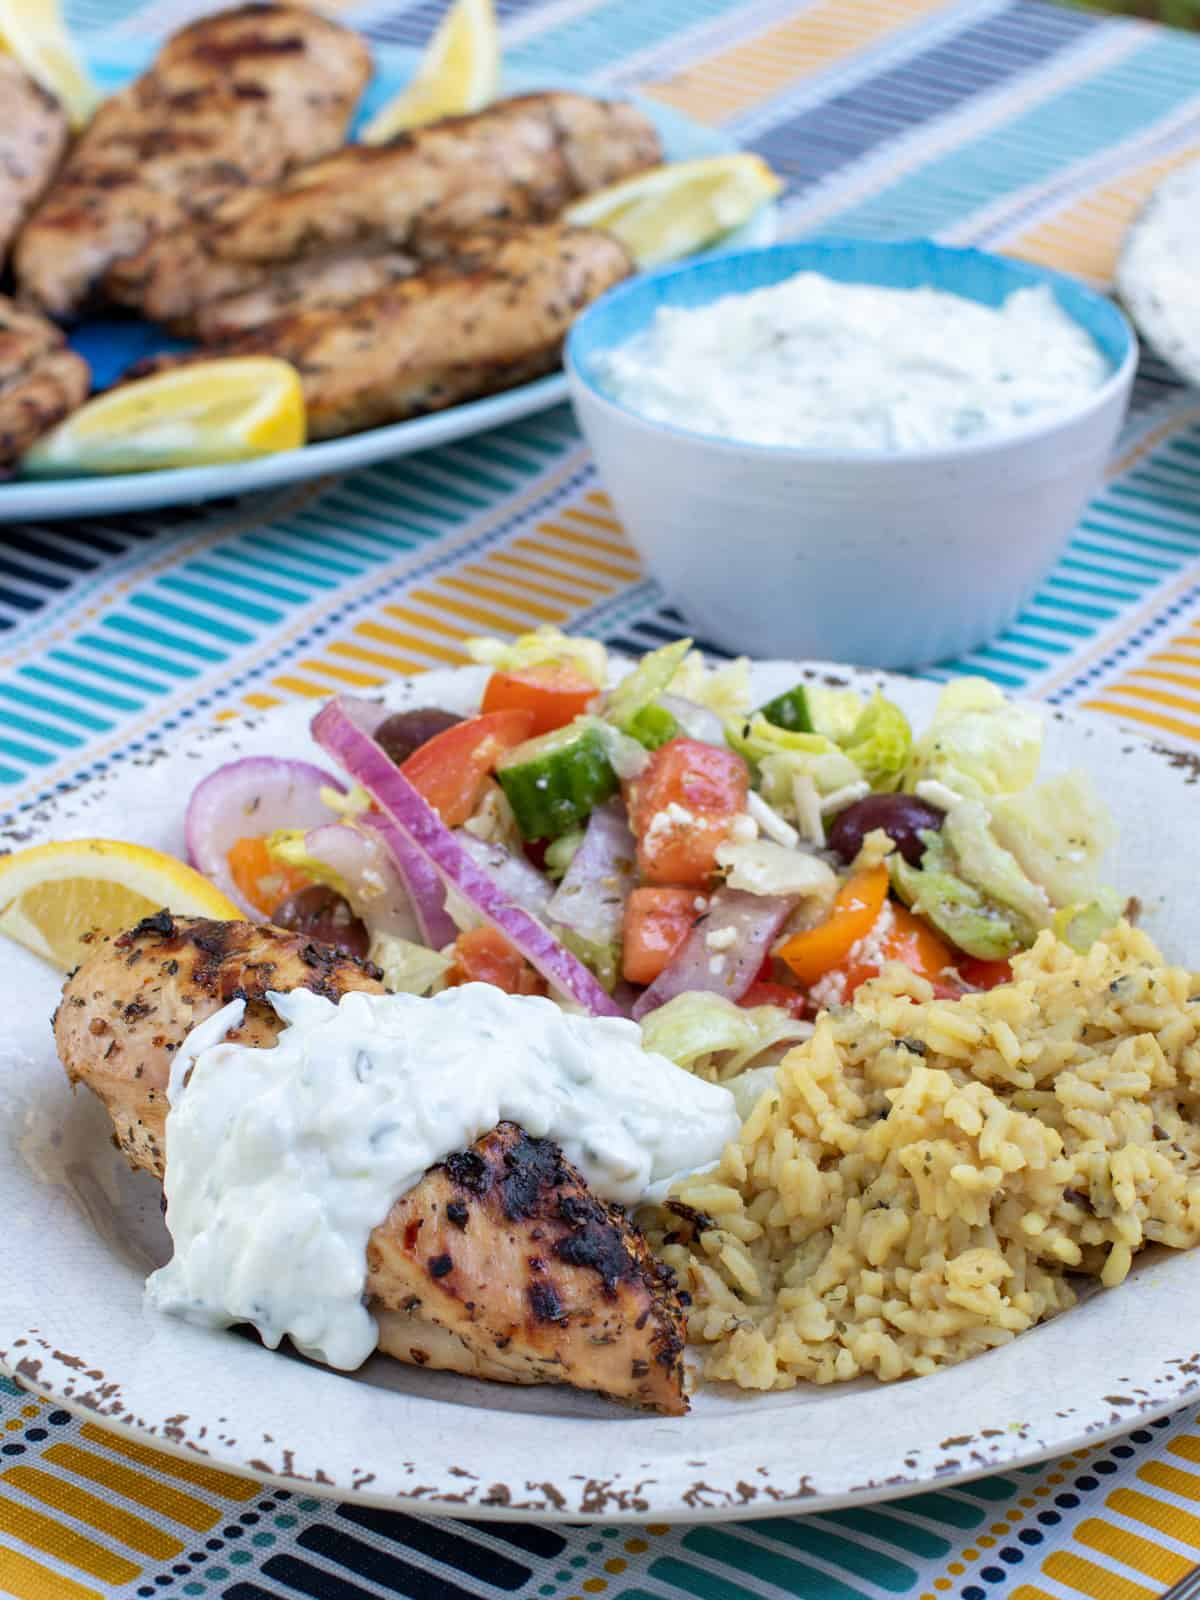 A plate of Greek food including chicken, salad, rice and tzatziki